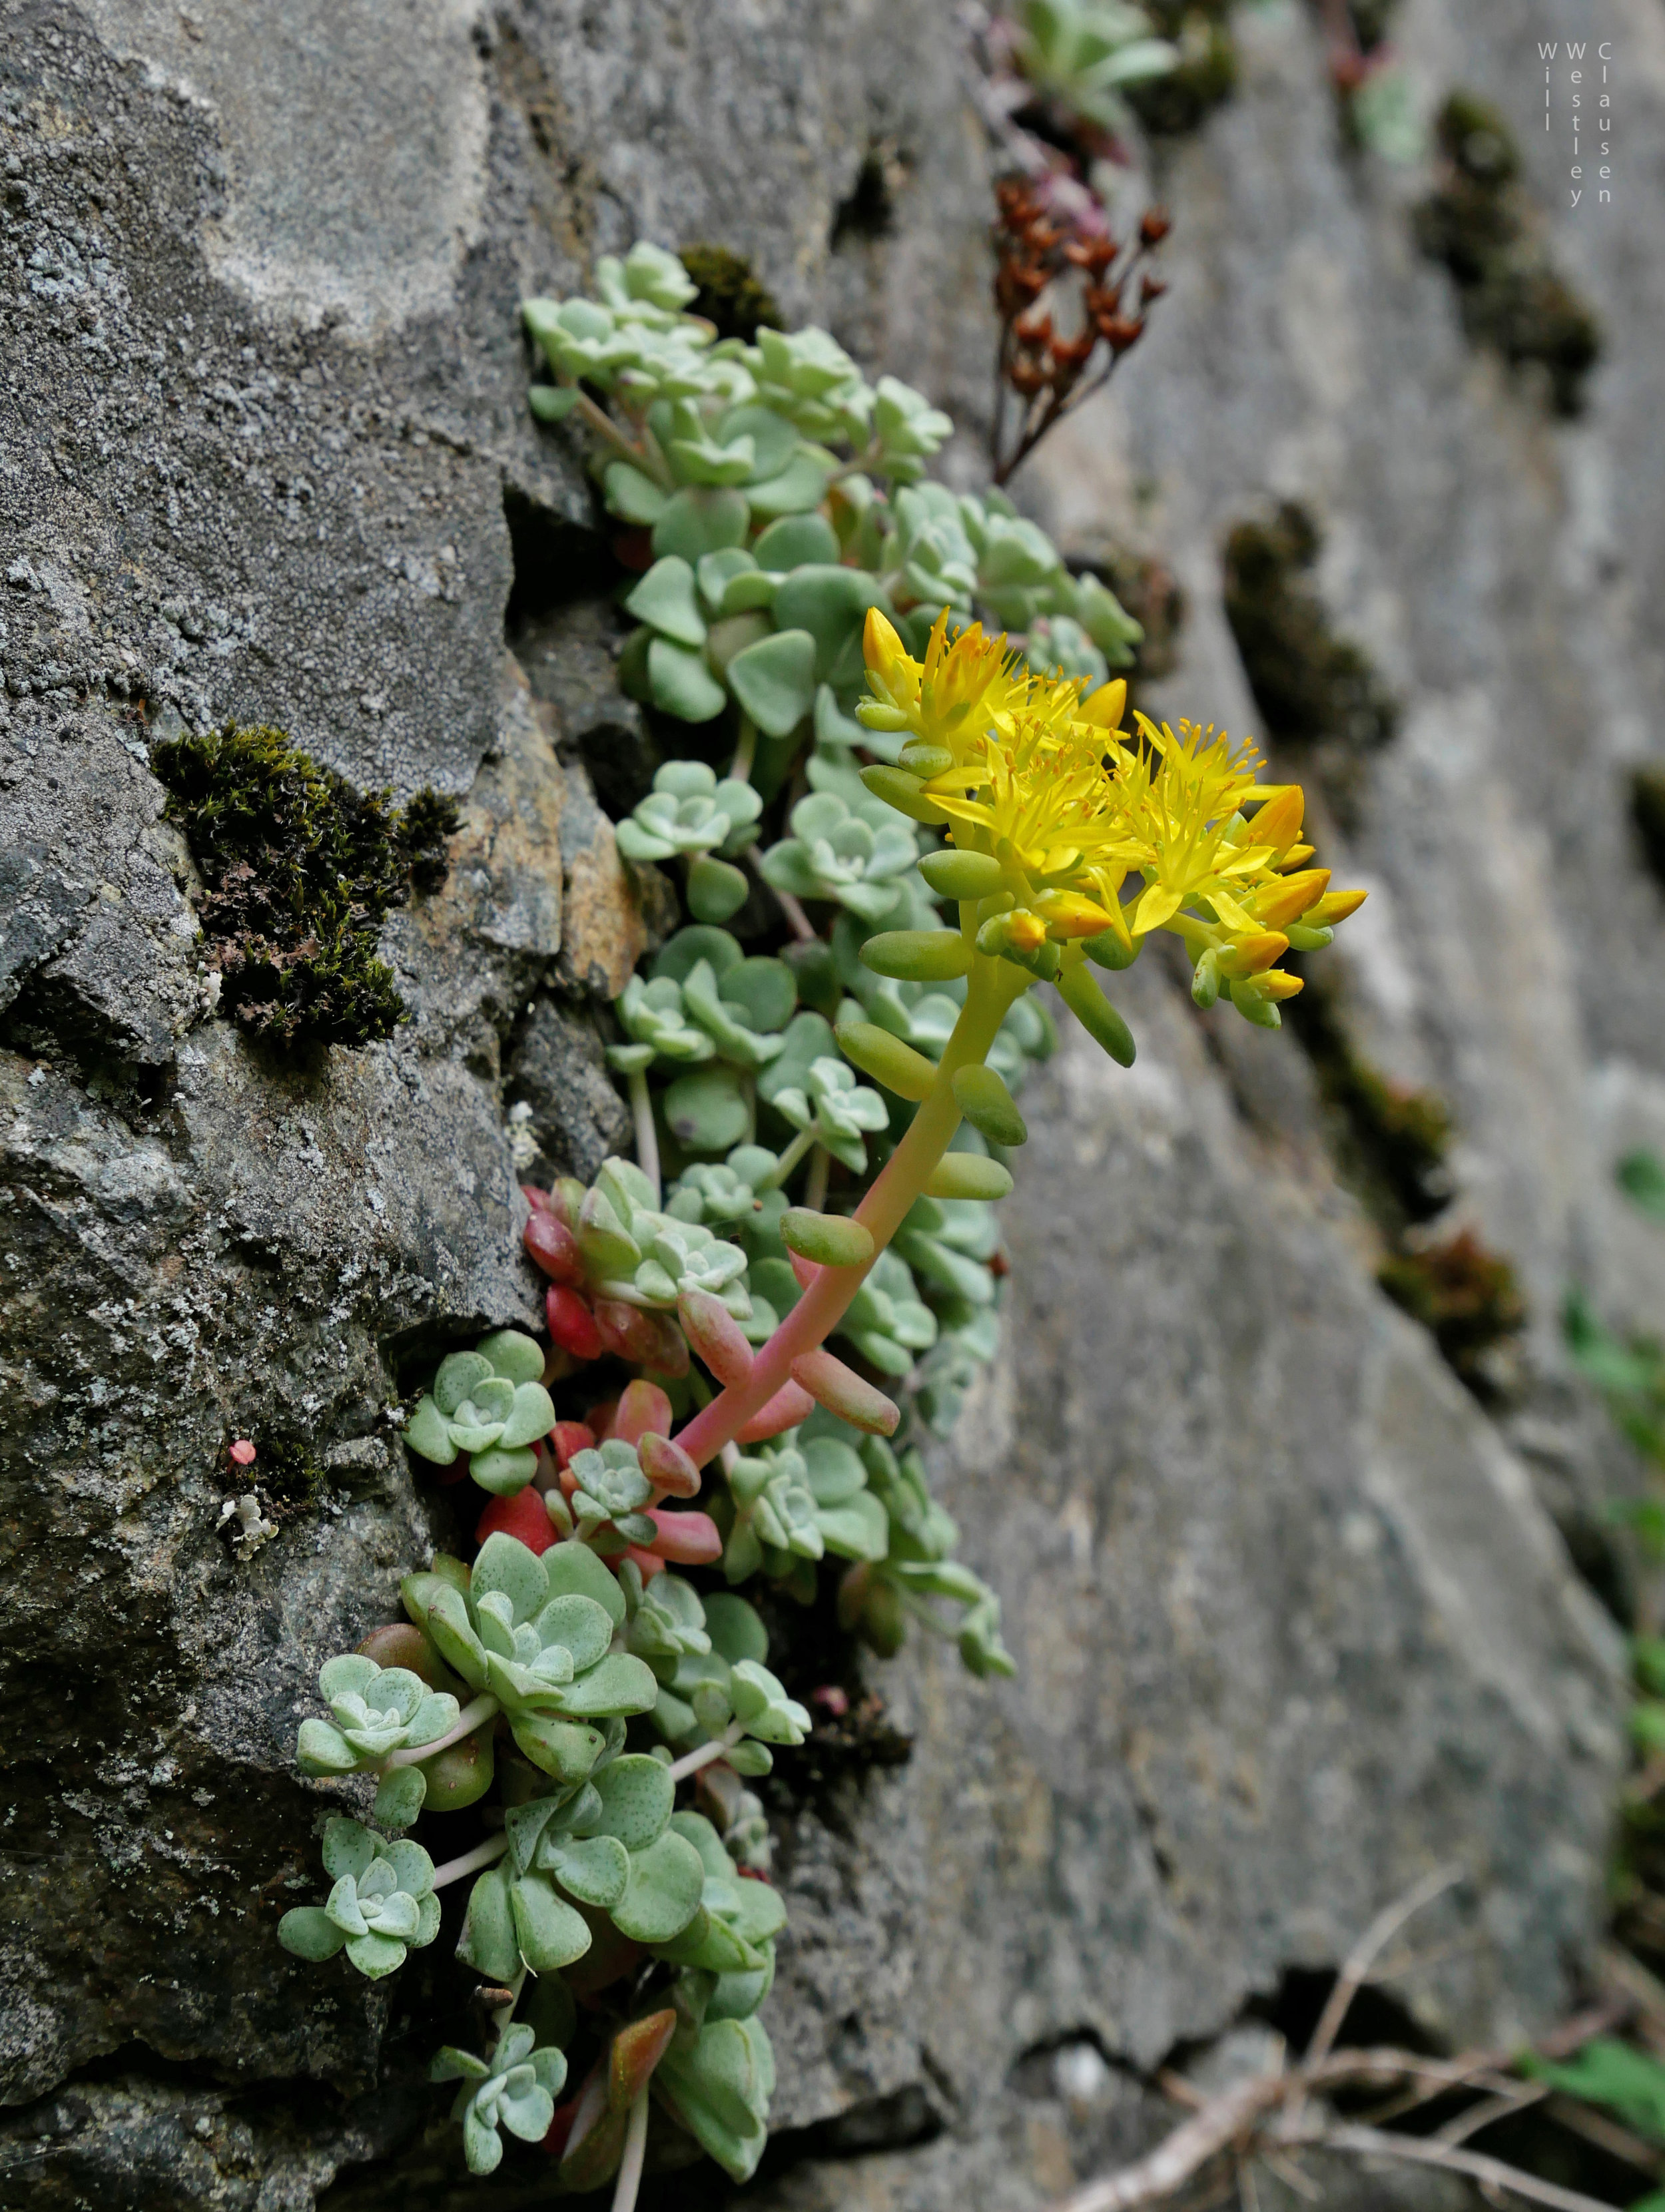 Growing From A Narrow Crevice